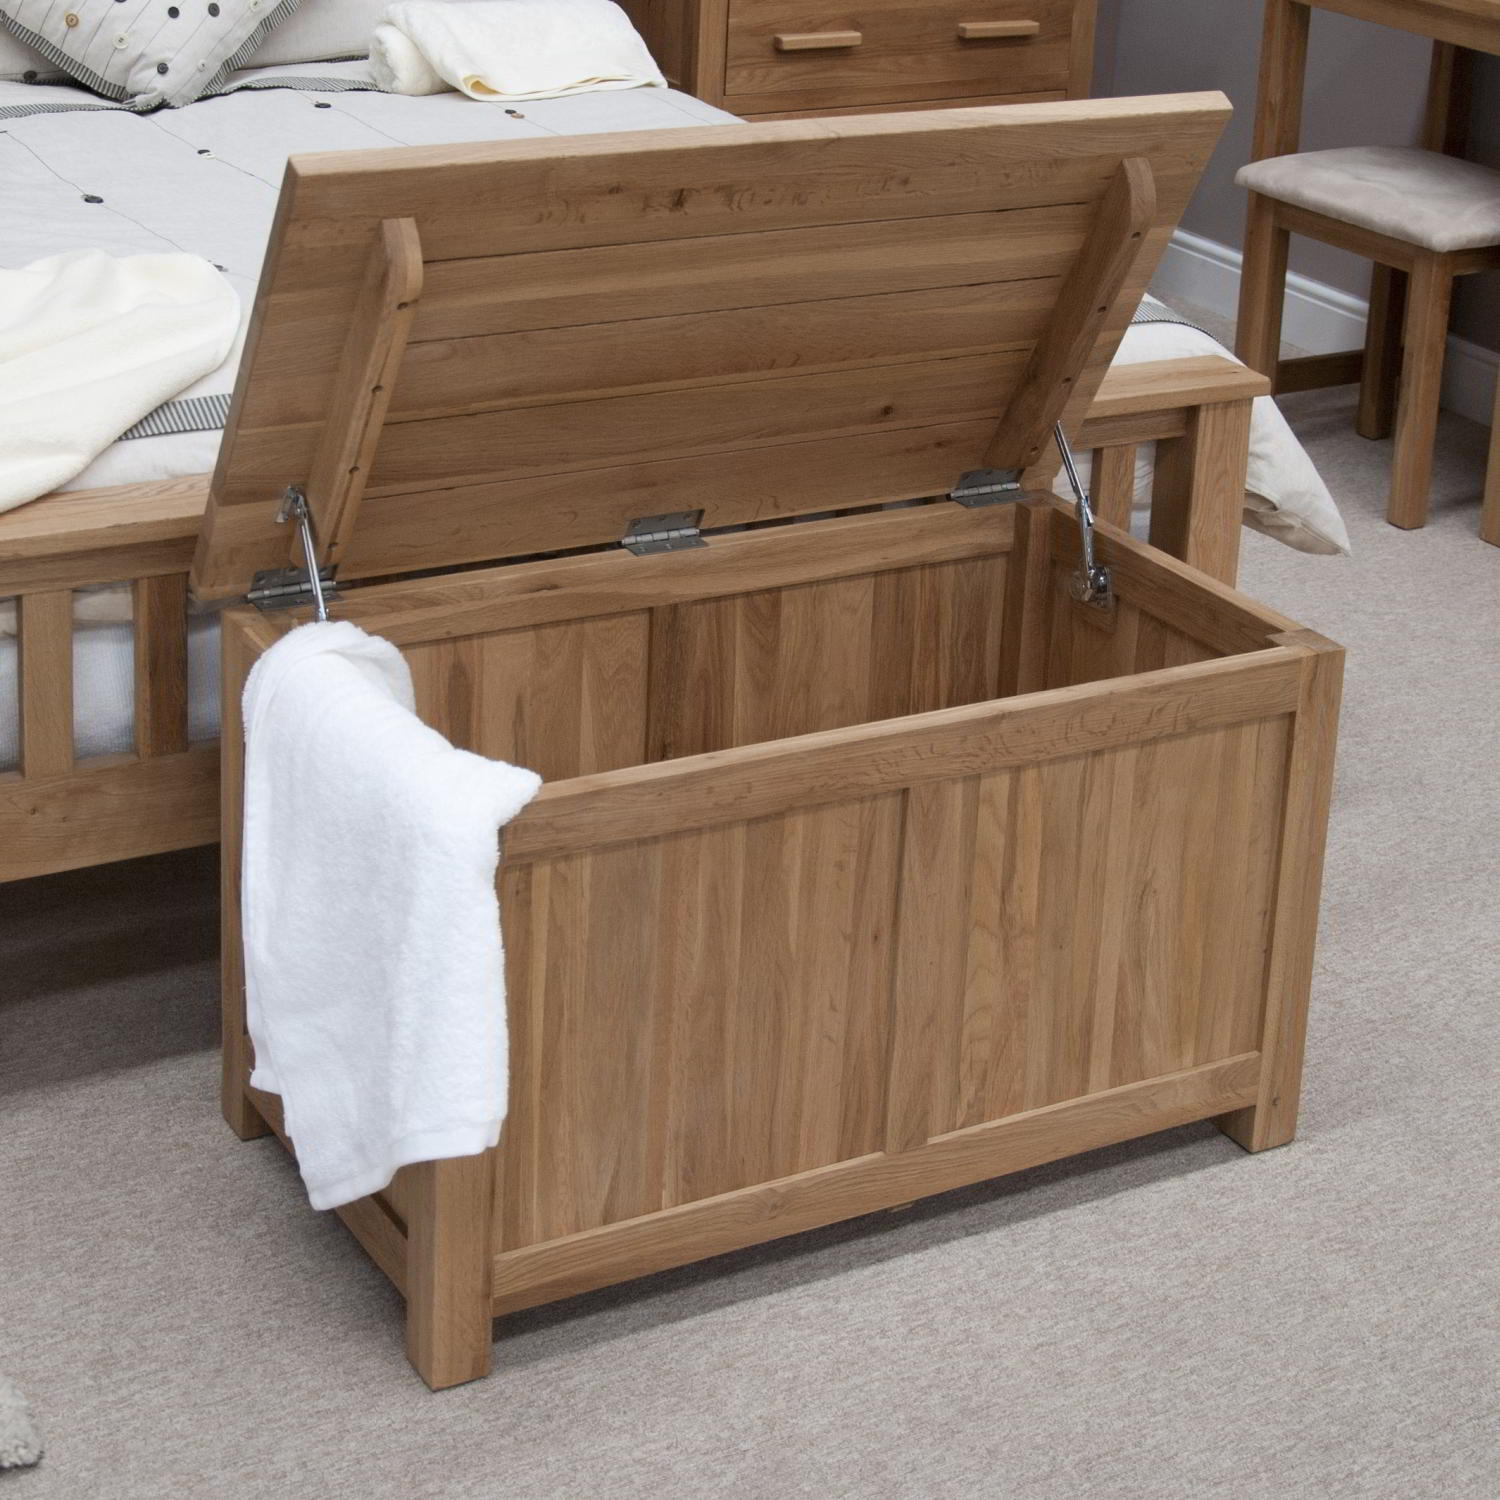 Bedroom Storage Boxes Eton Solid Oak Bedroom Furniture Blanket Storage Box Chest